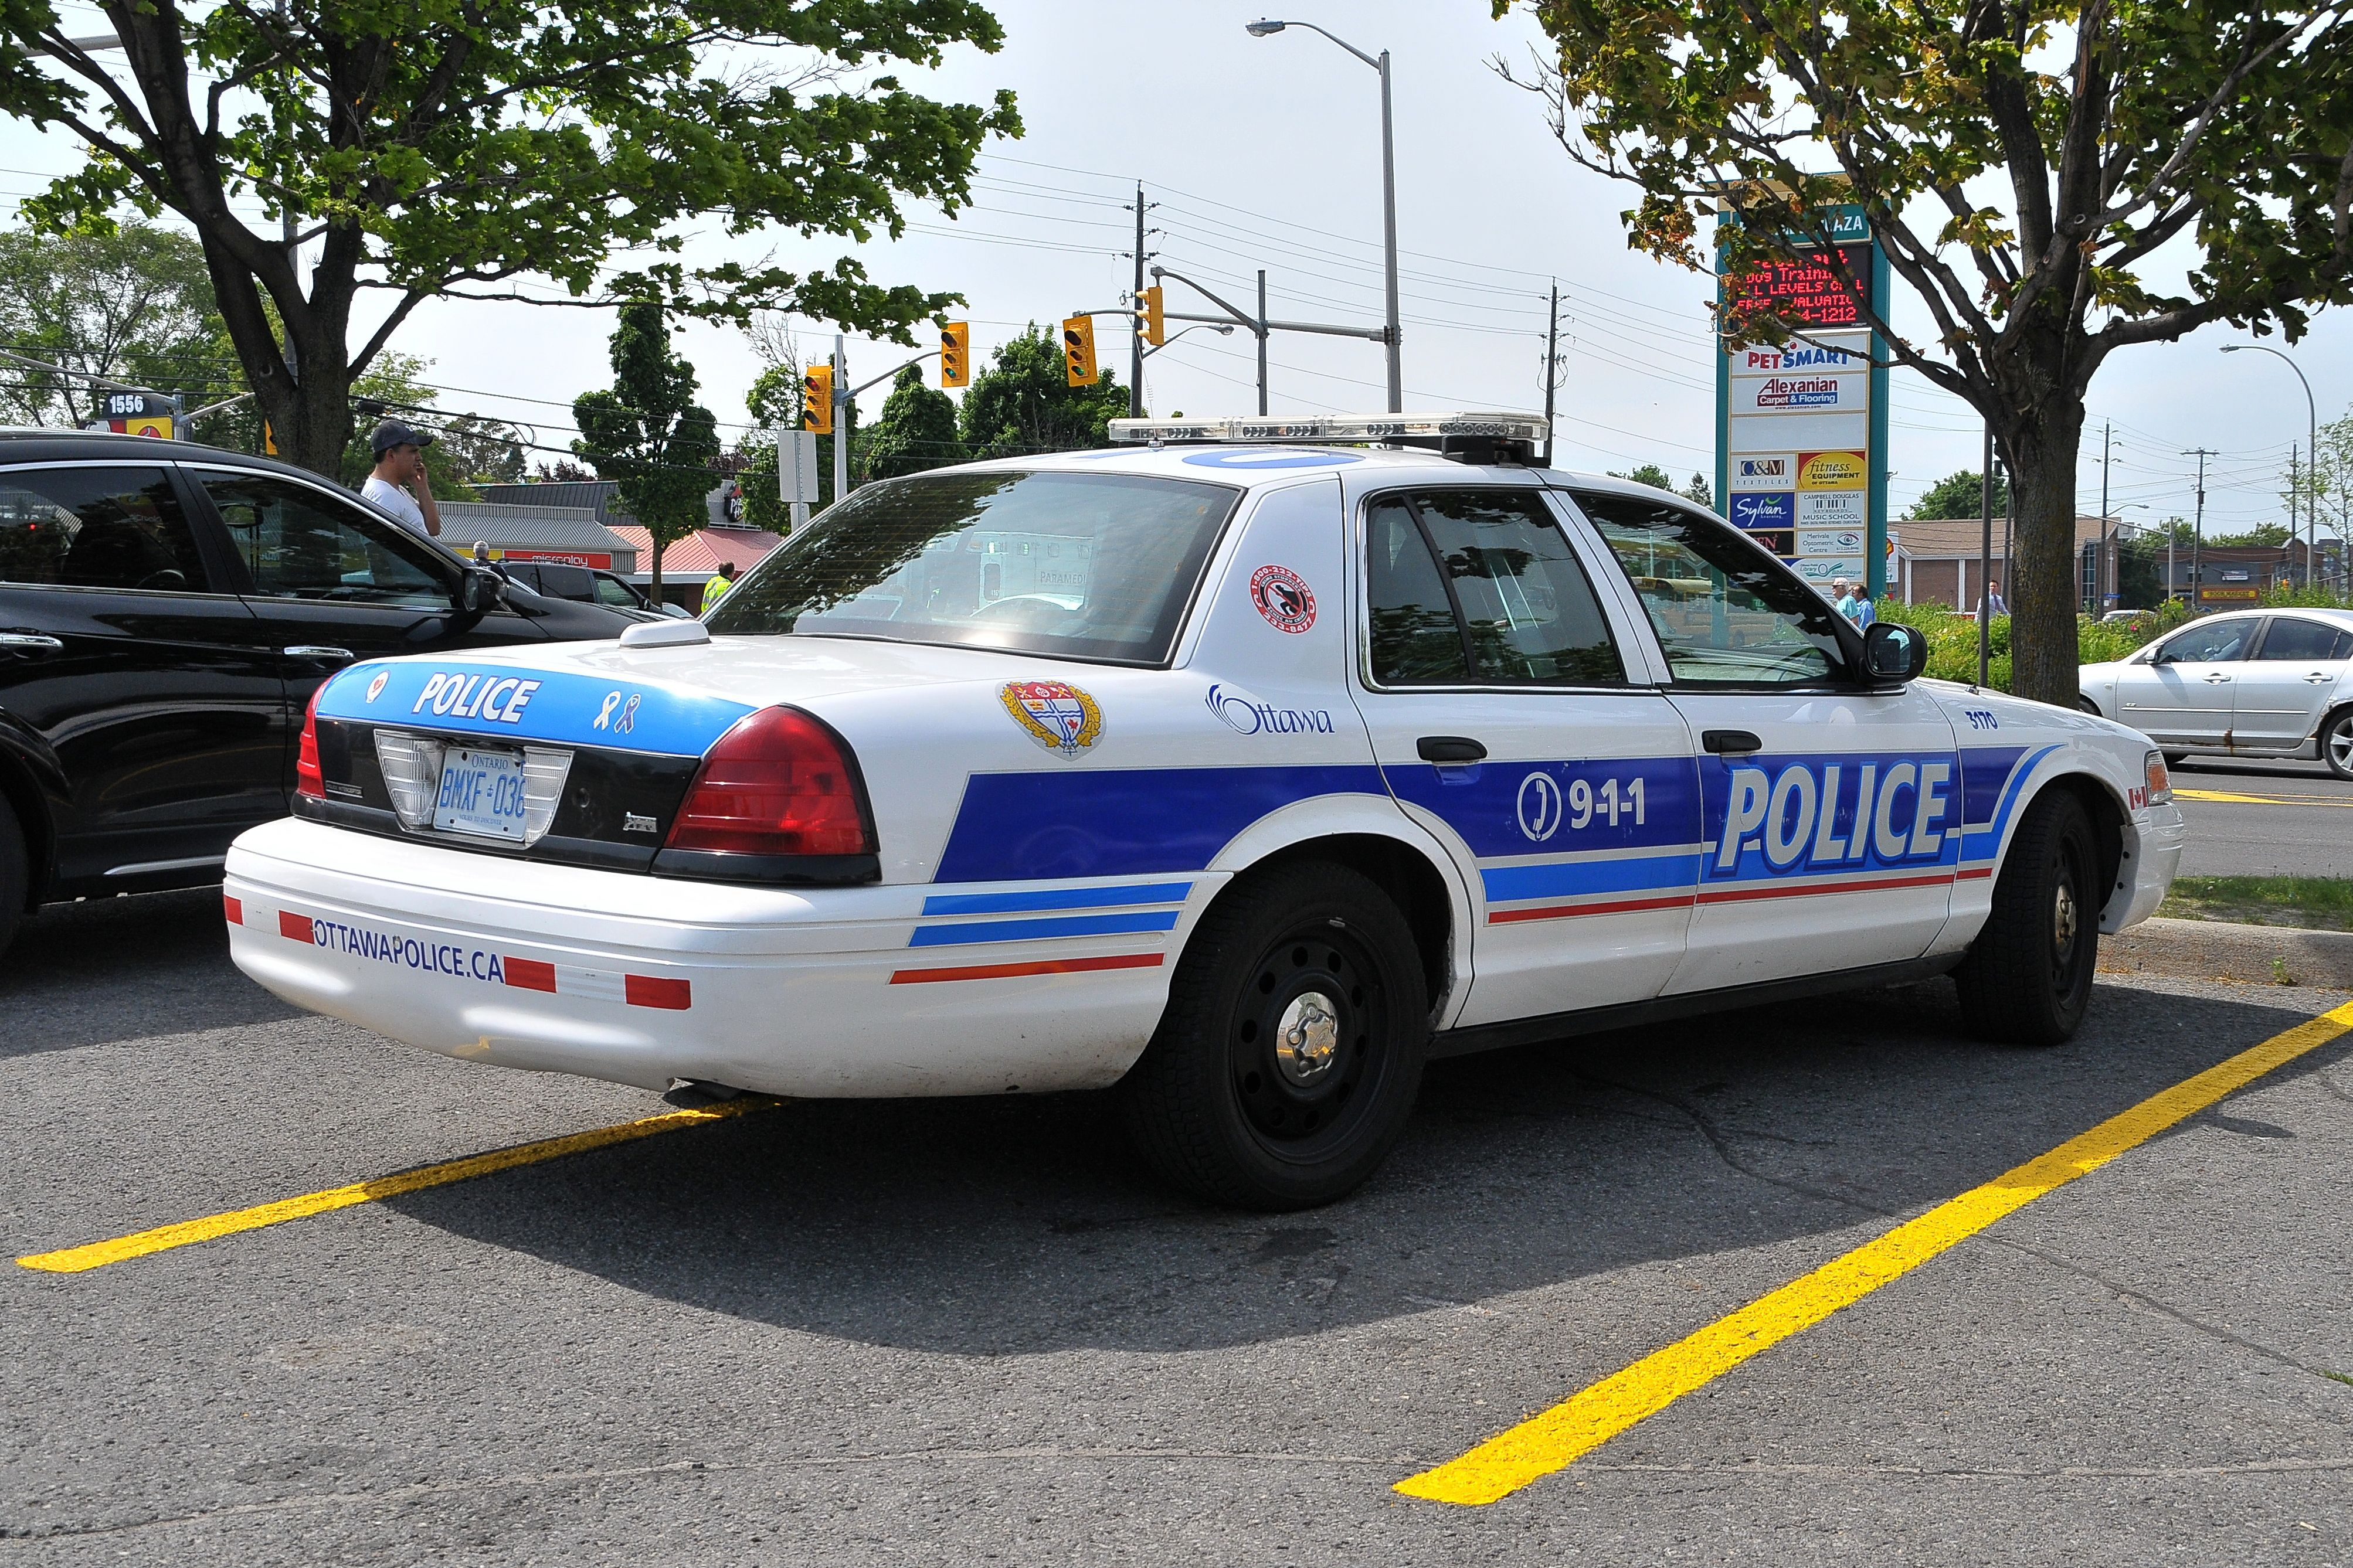 All Sizes Ops 3170 Ford Crown Victoria Interceptor Police Car